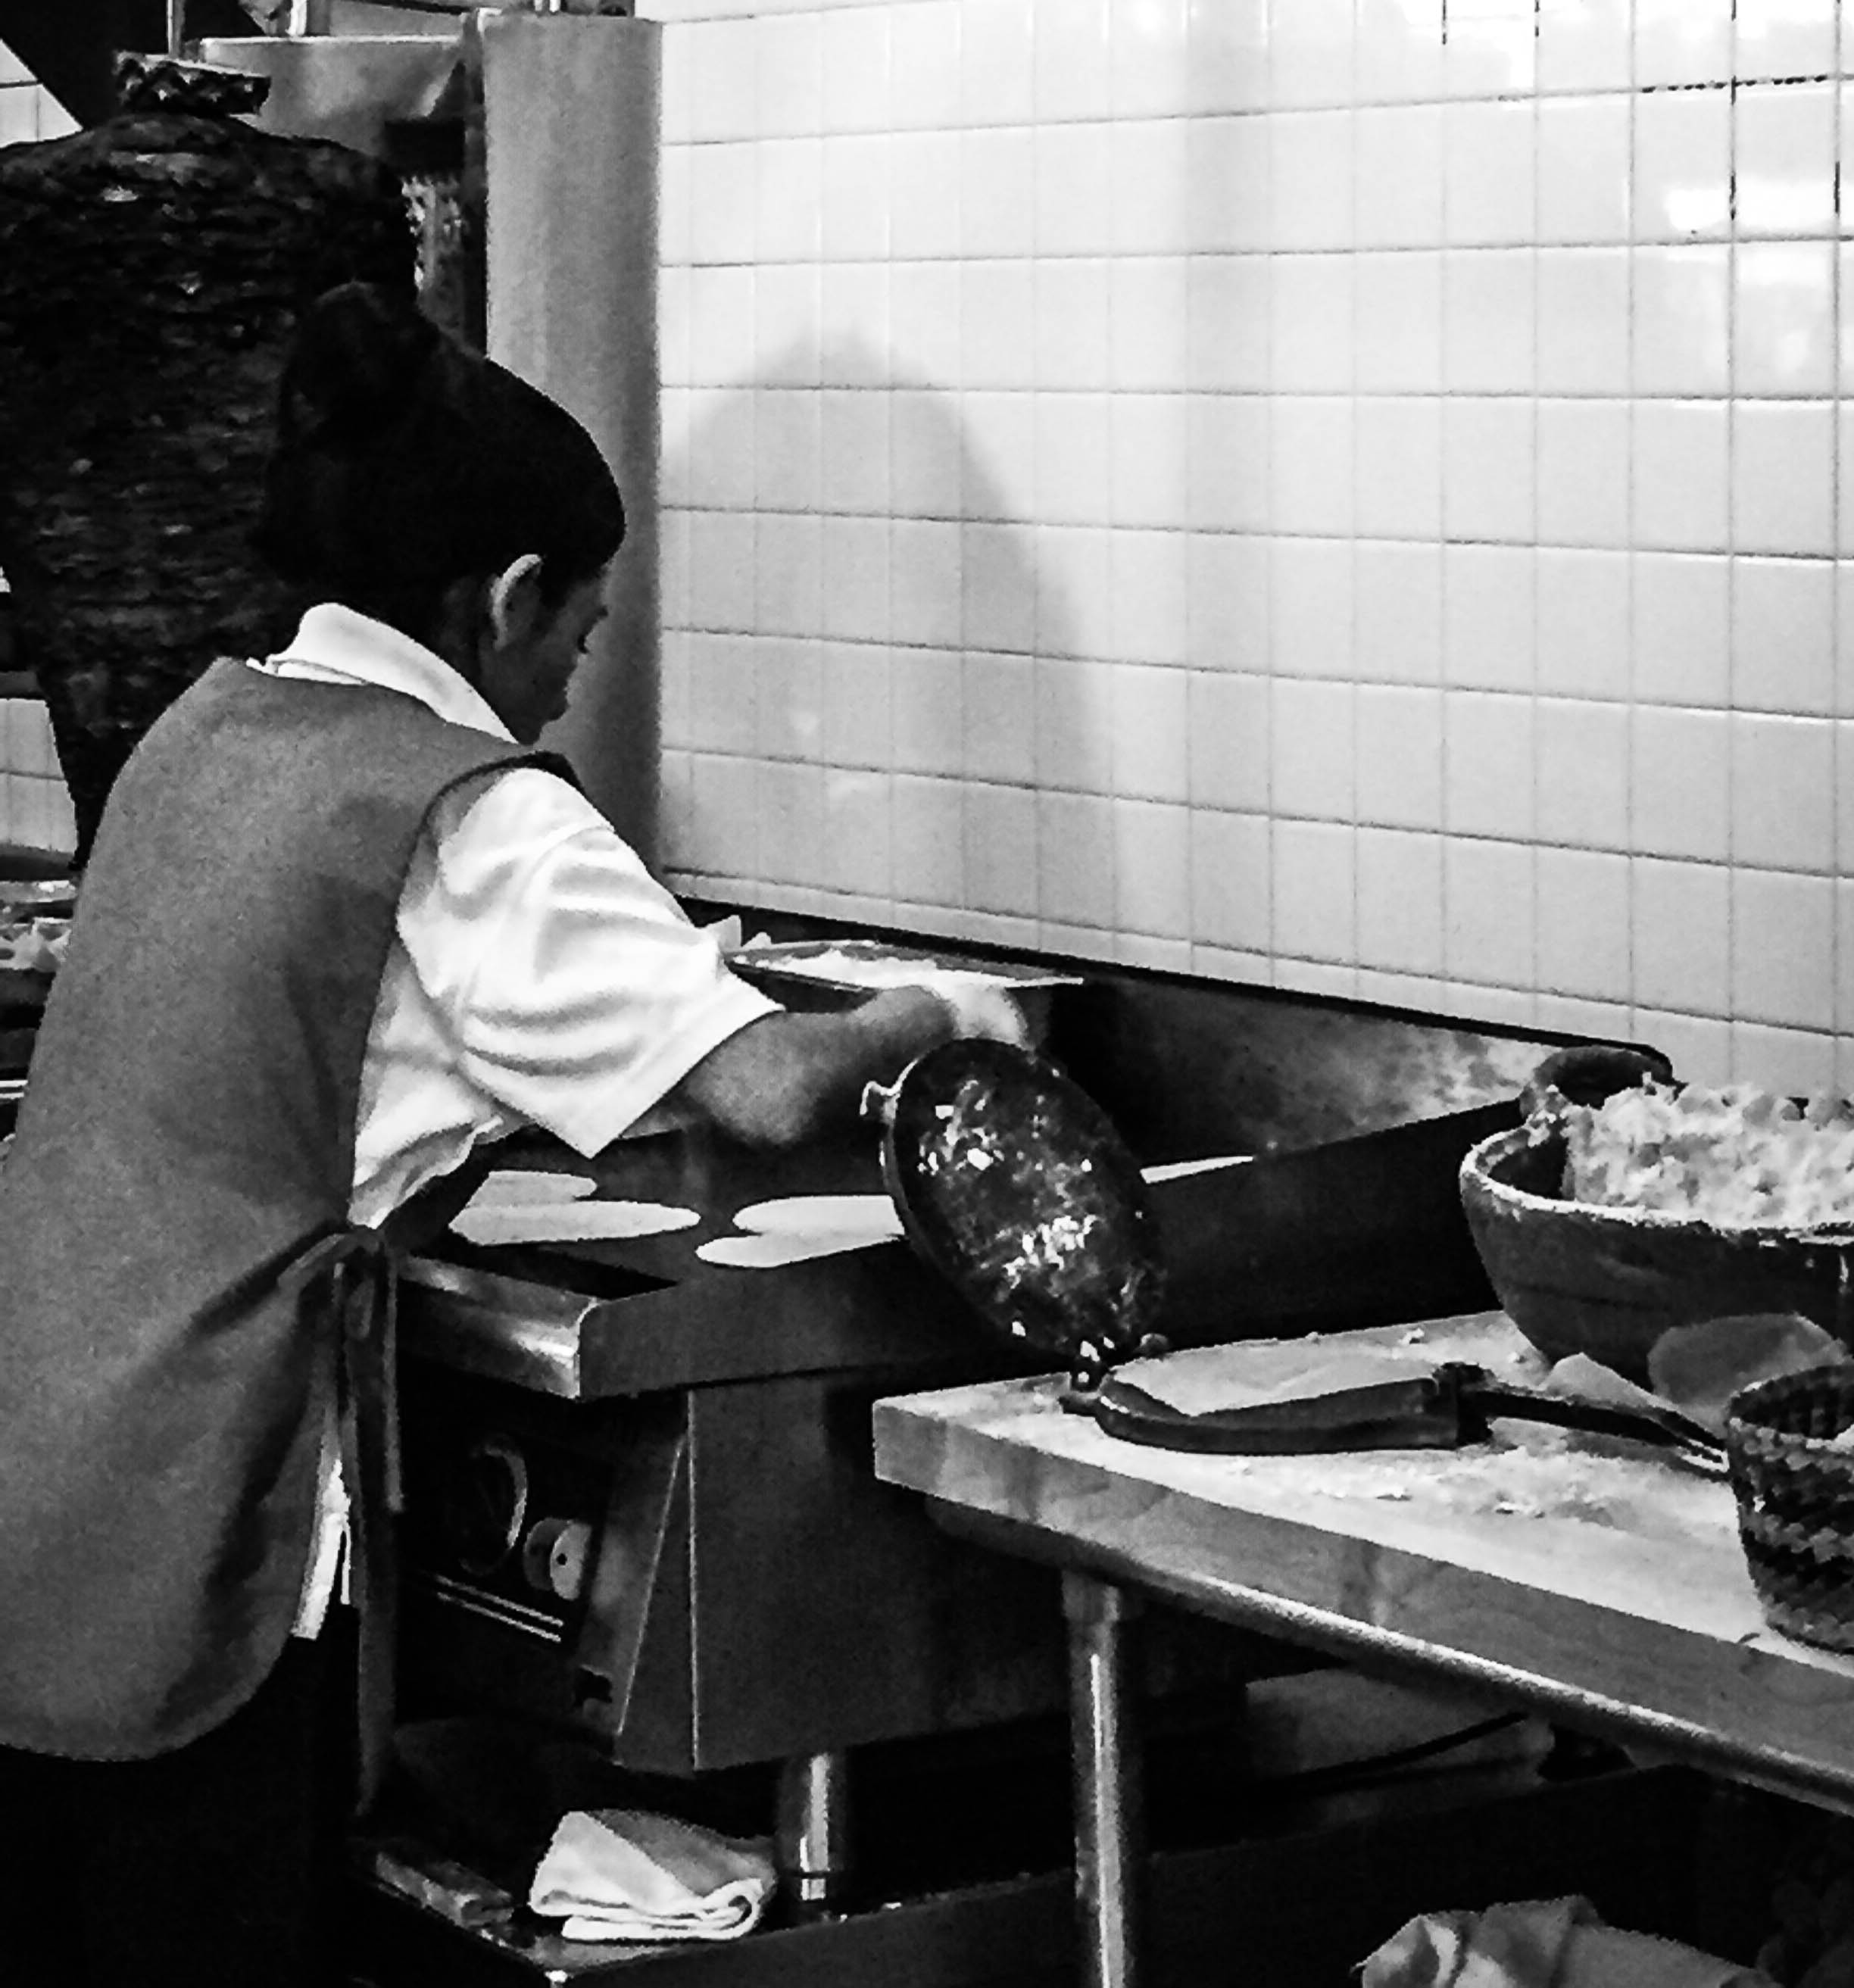 ROSE & IVY Journal A Taste of New York Los Tacos No. 1